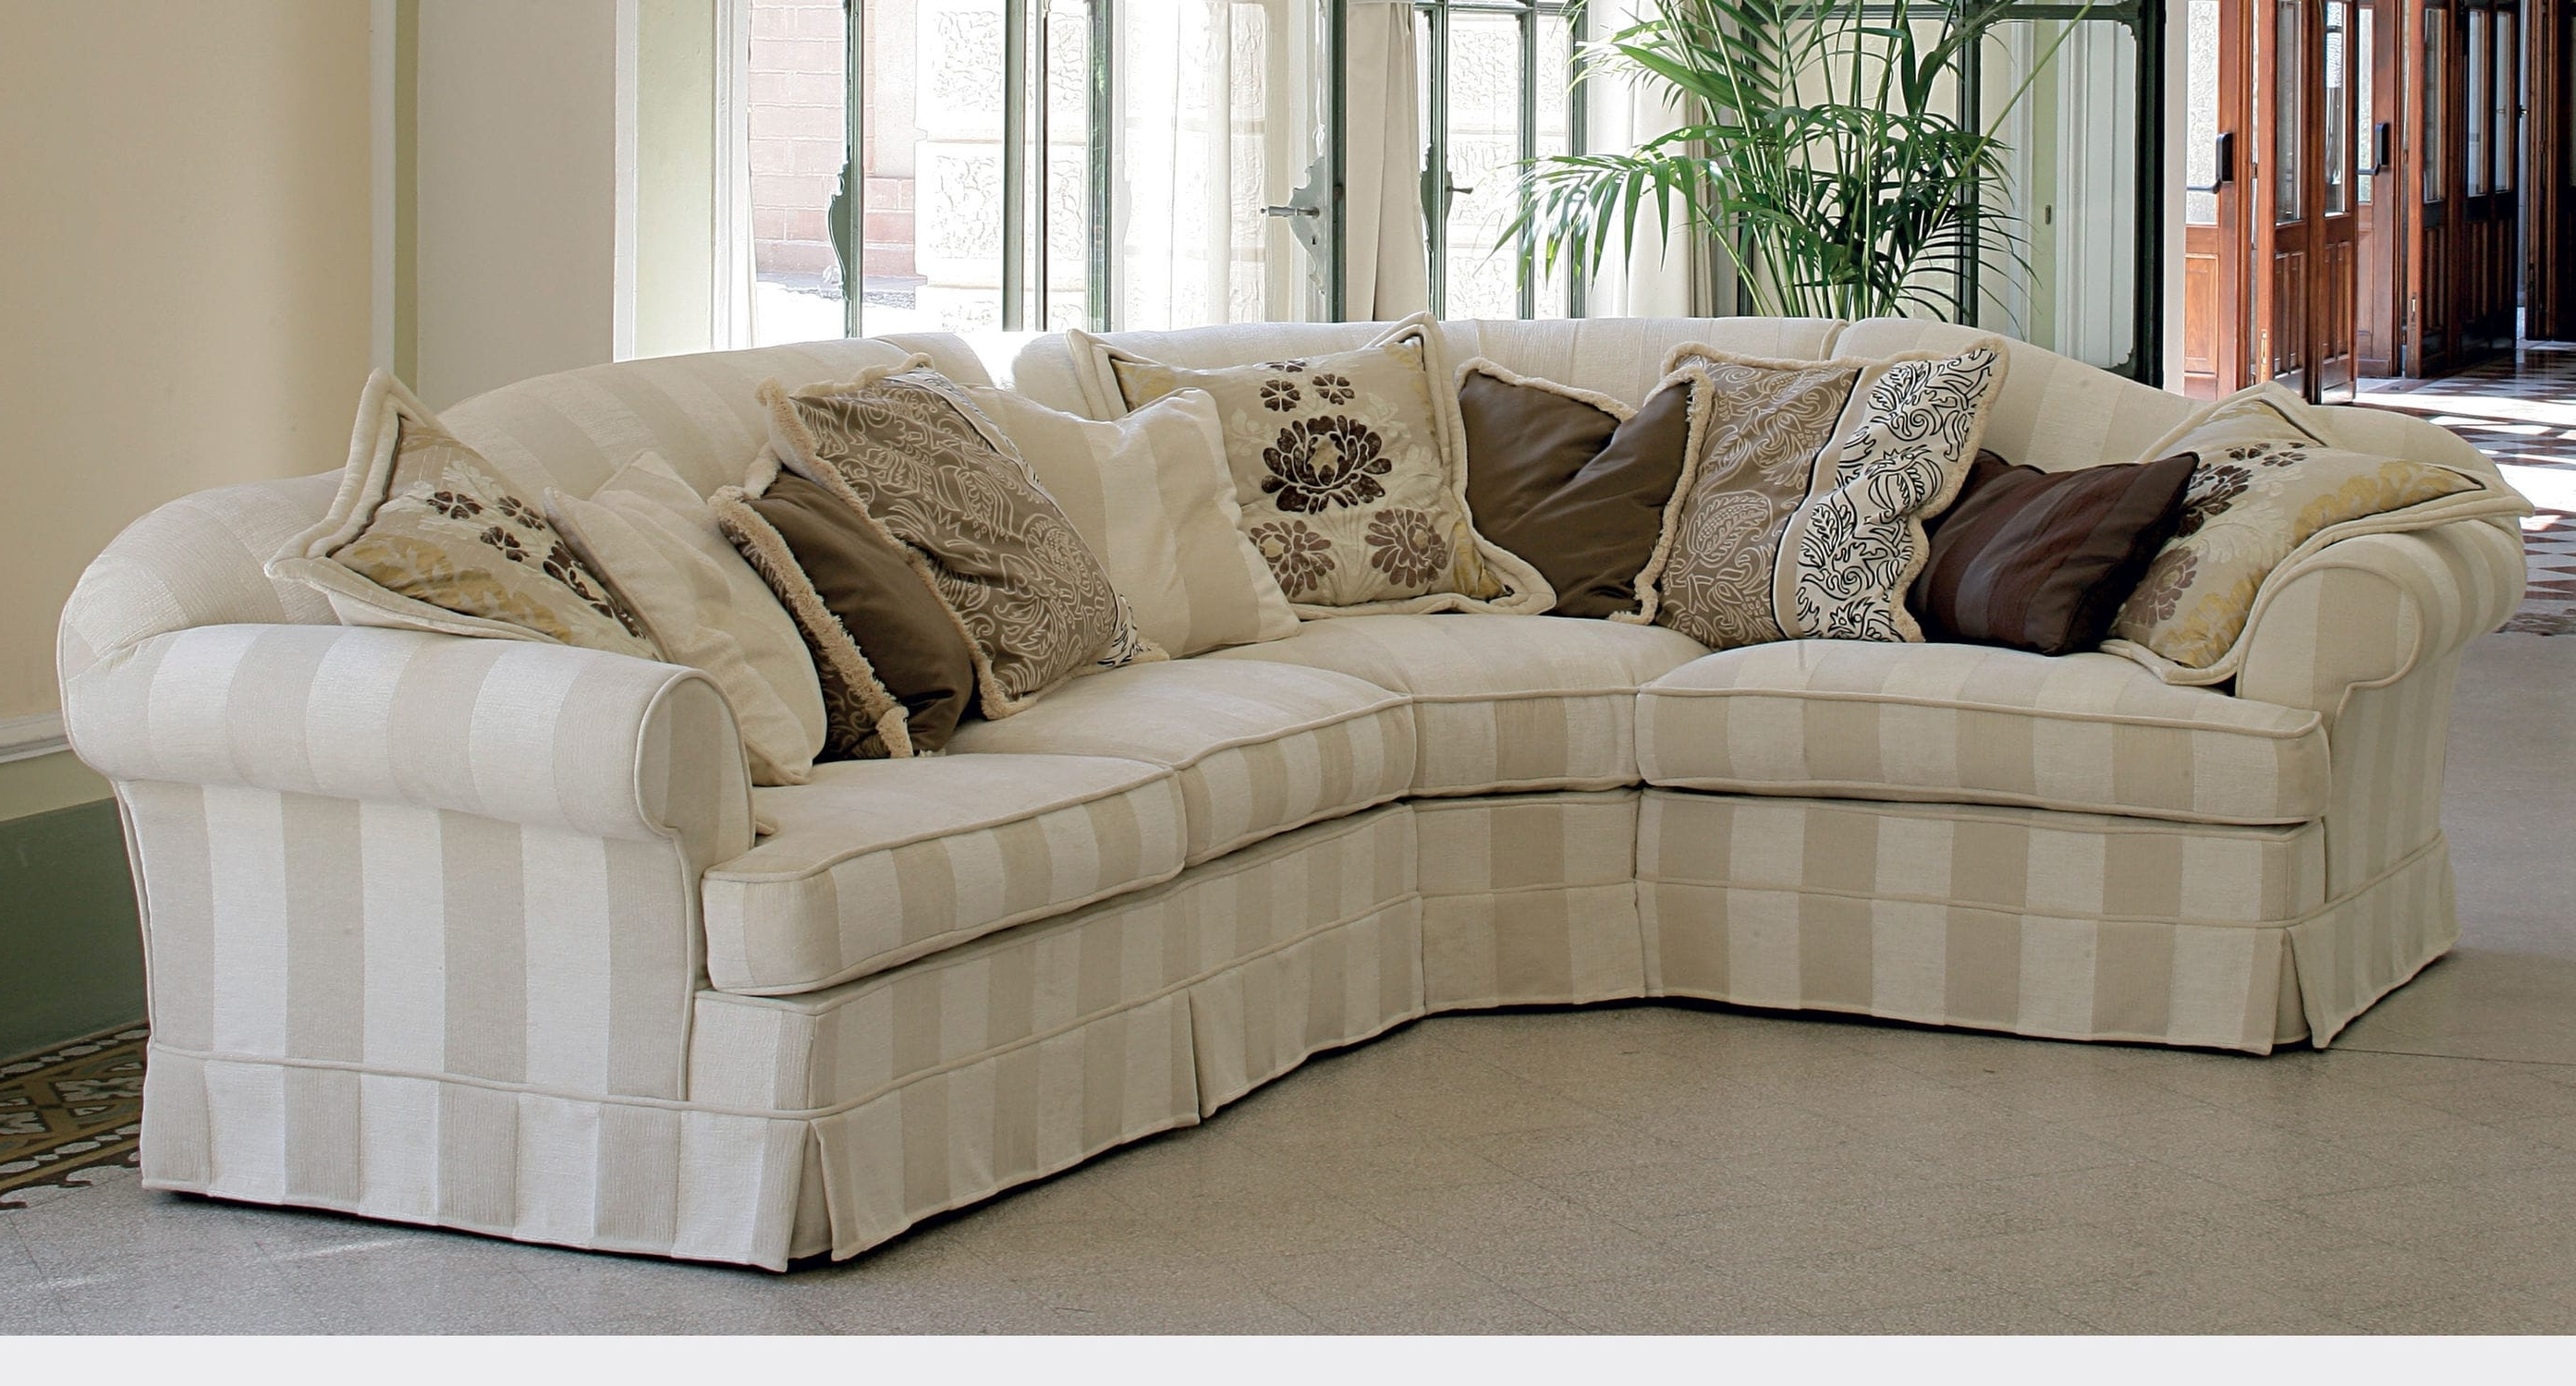 Most Recent Cheap Corner Sofas Fabric Fancy Home Design Inside Sofas With Removable Cover (View 6 of 15)